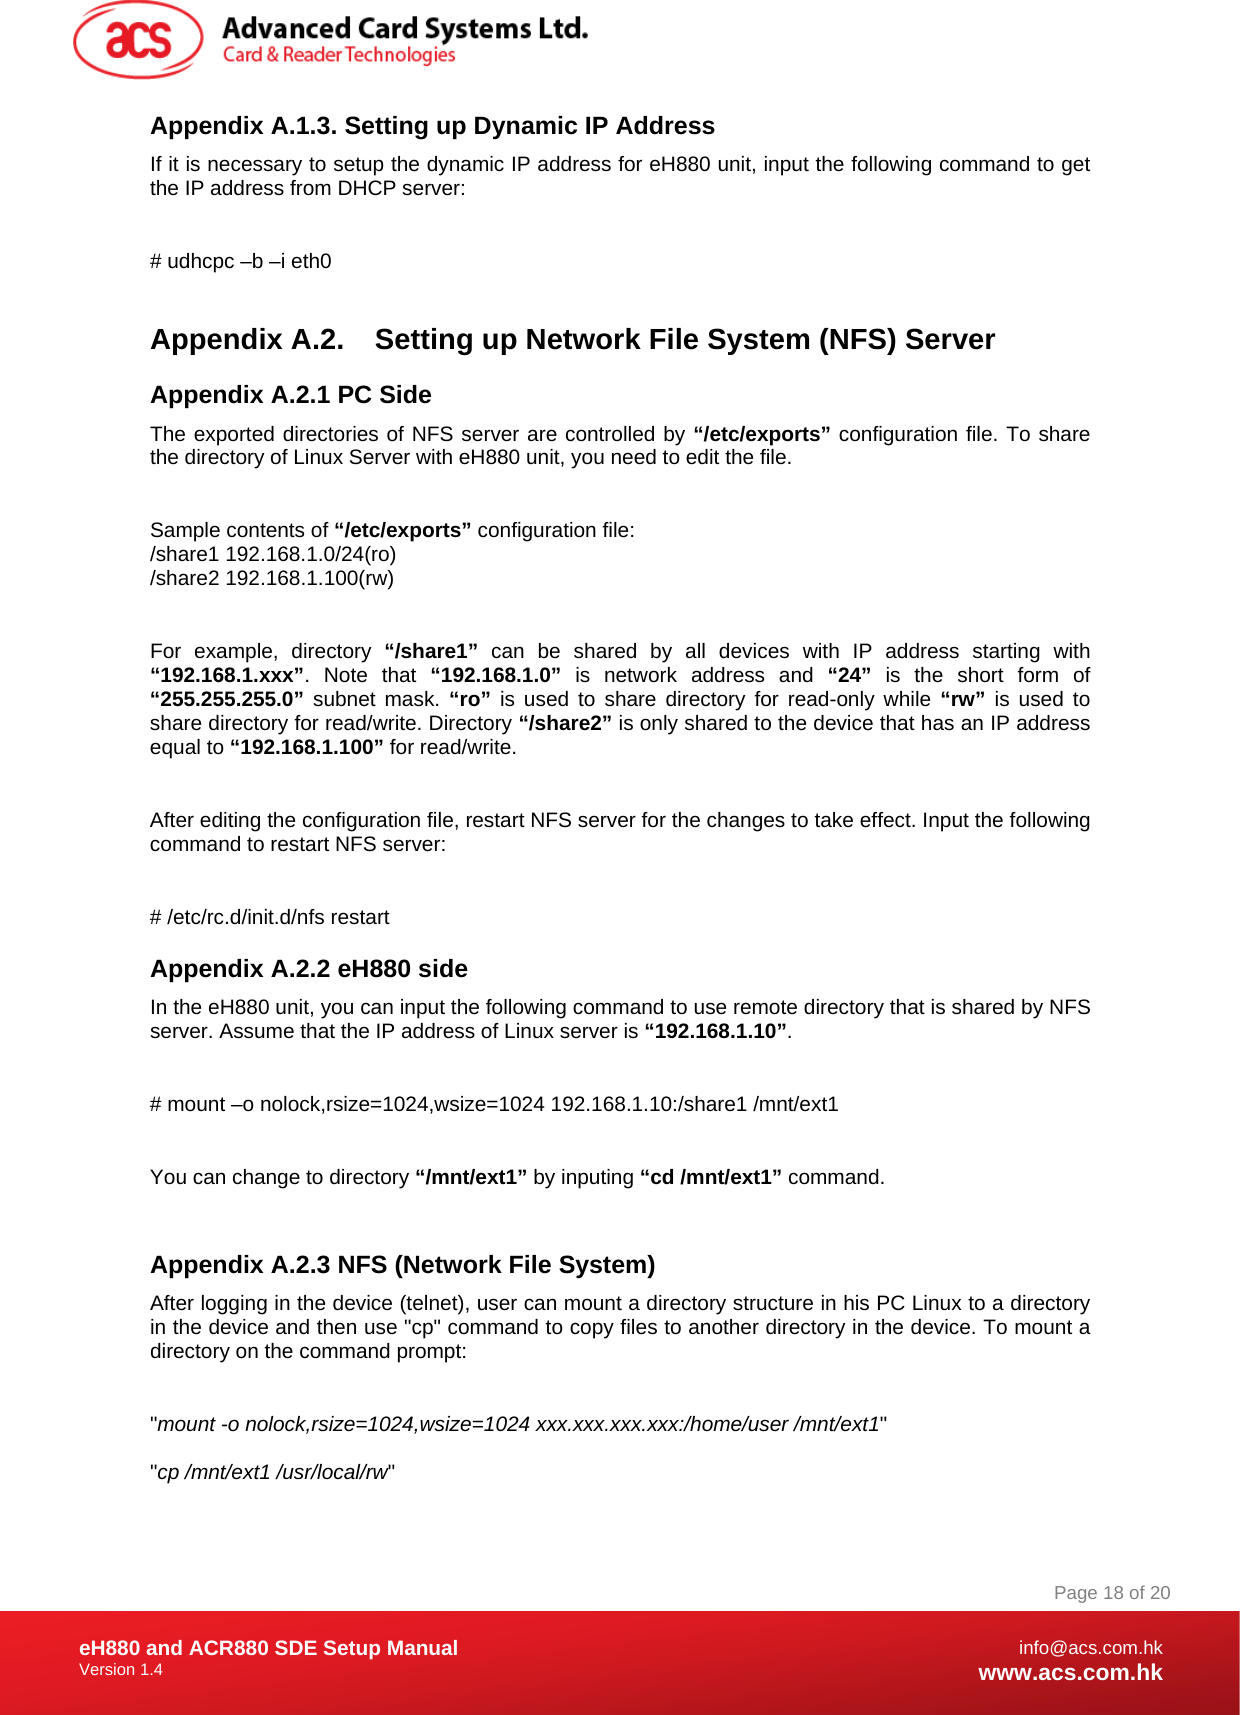 Advanced Card Systems EH880 Smart Card Terminal User Manual